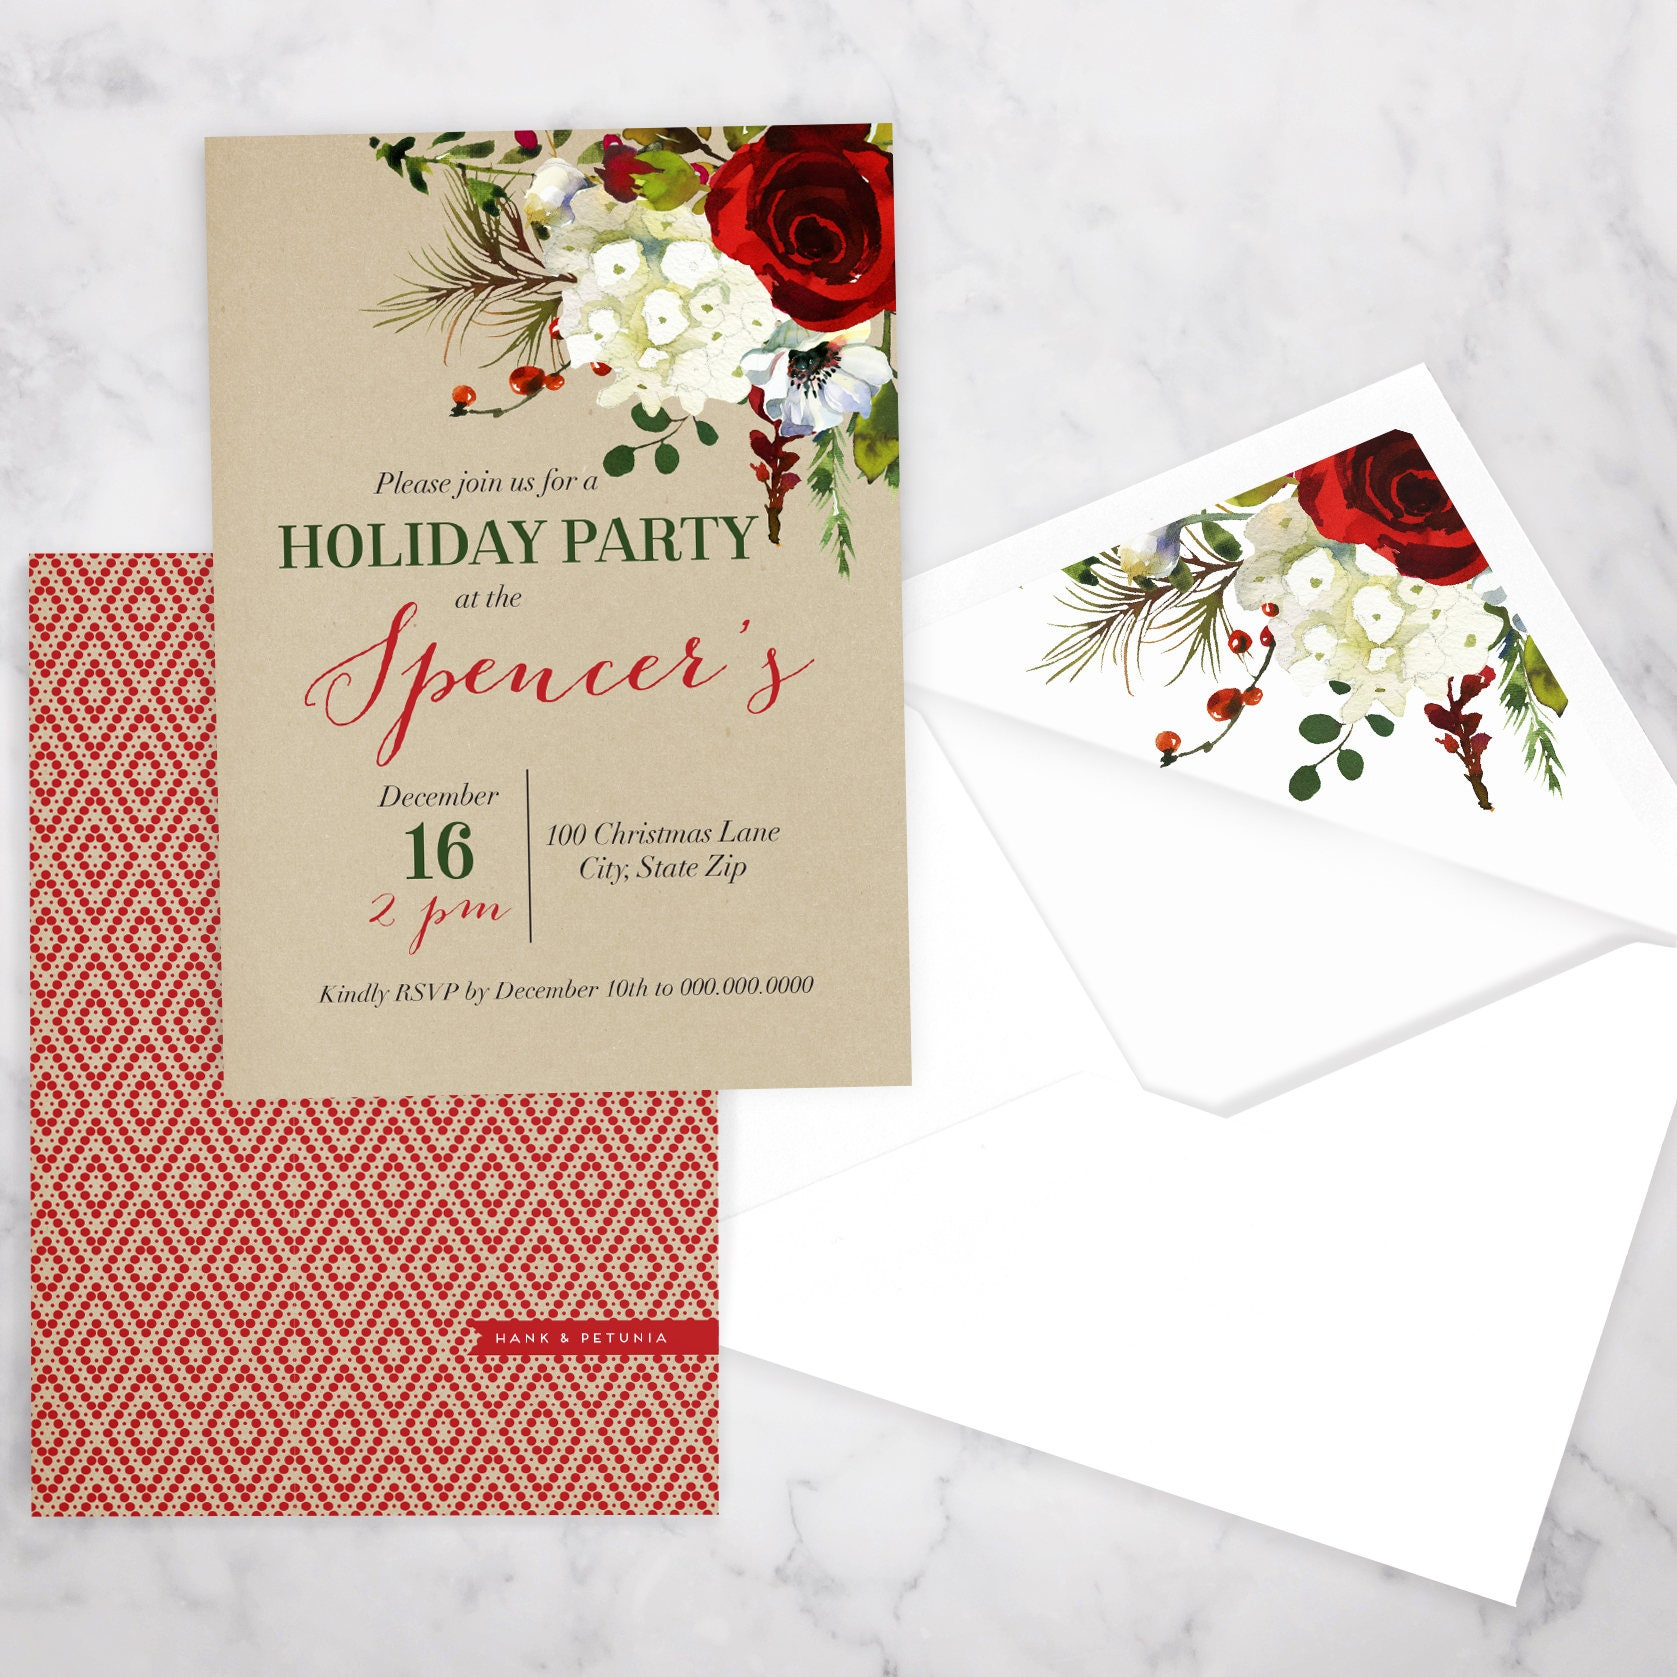 Elegant Winter Watercolor Holiday Party Invitation, Christmas Party ...